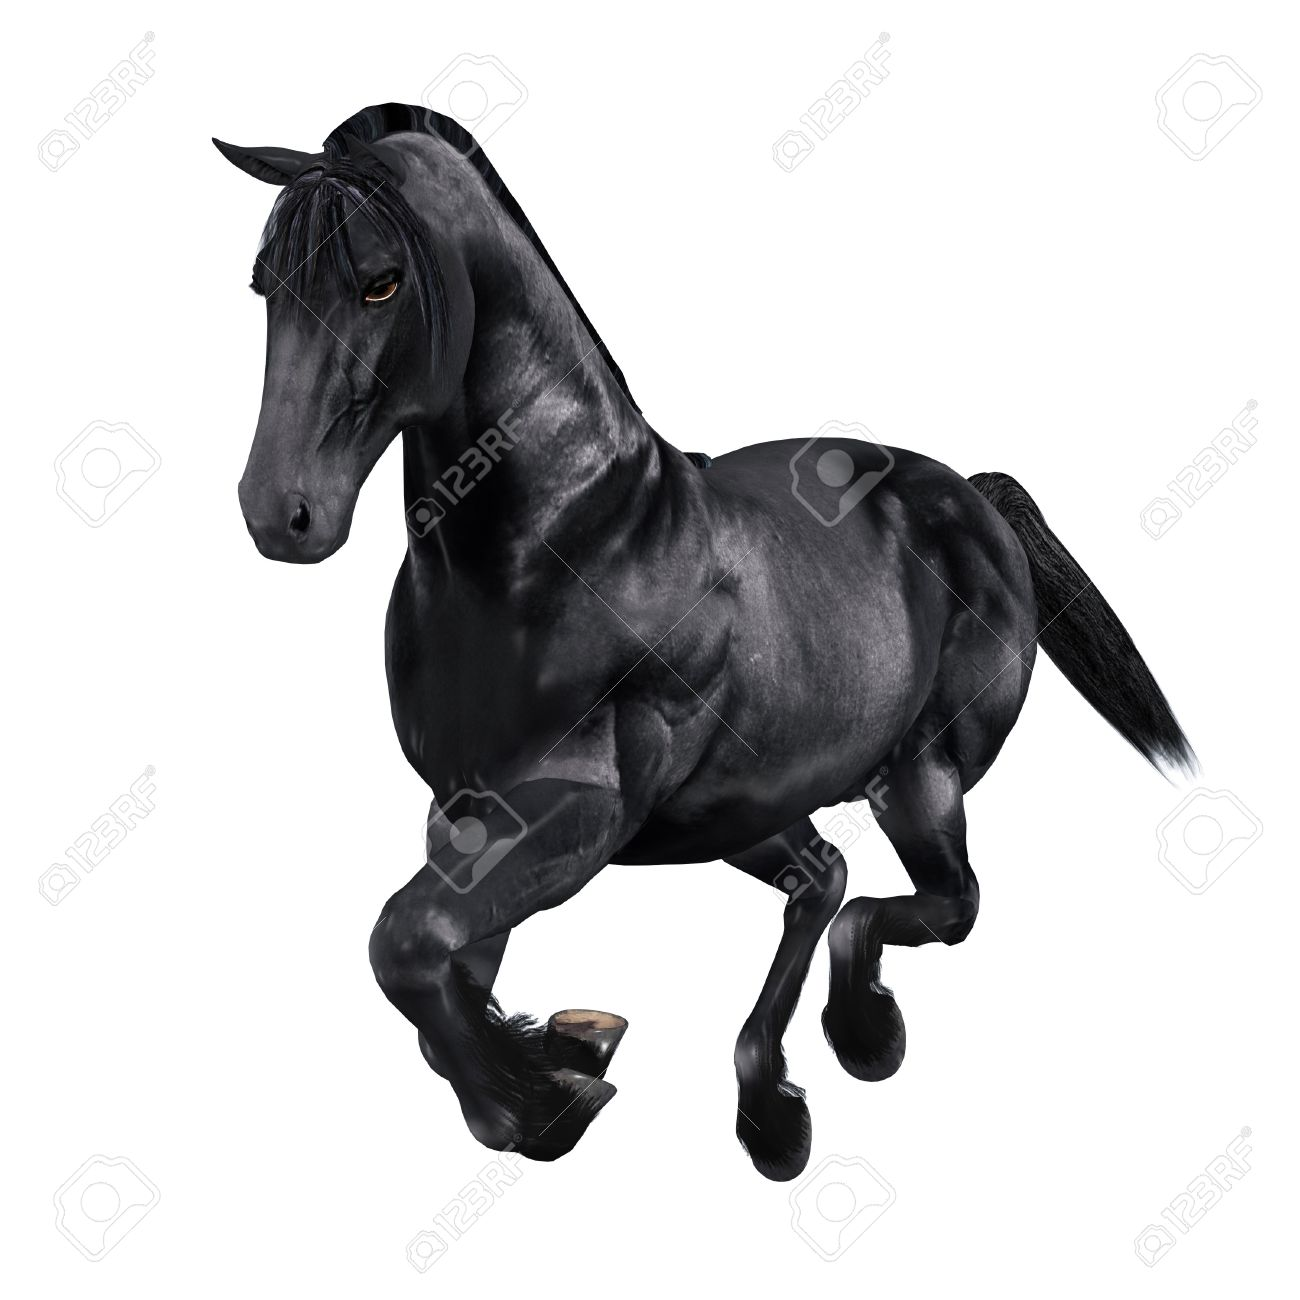 Digitally Rendered Image Of A Black Horse On White Background Stock Photo Picture And Royalty Free Image Image 21658122